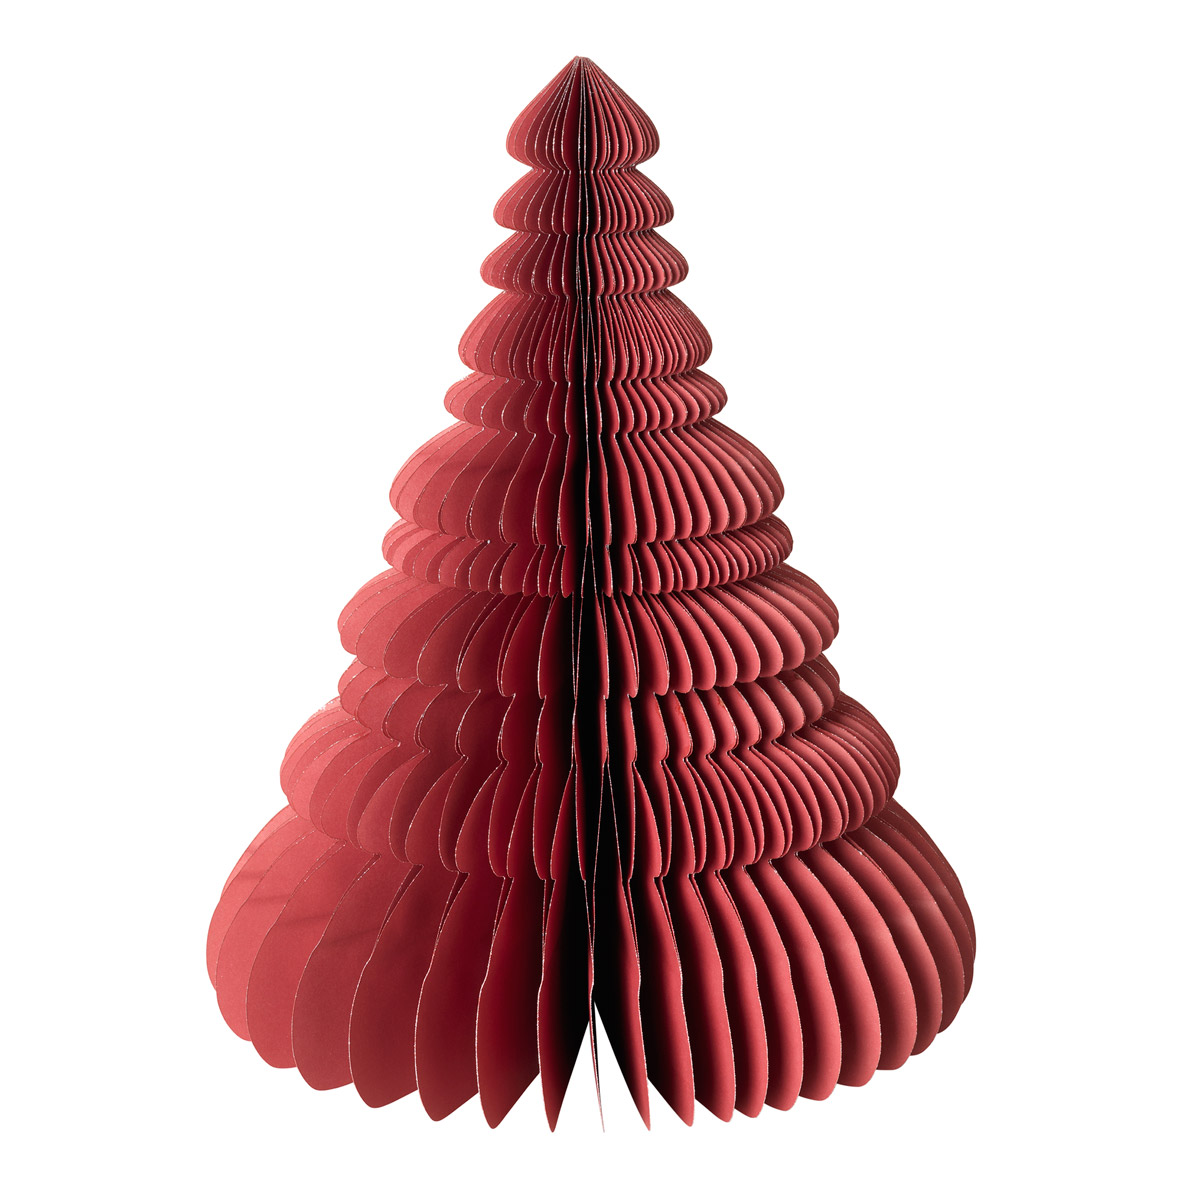 70080193-Large-Paper-Christmas-Tree-Ornament-